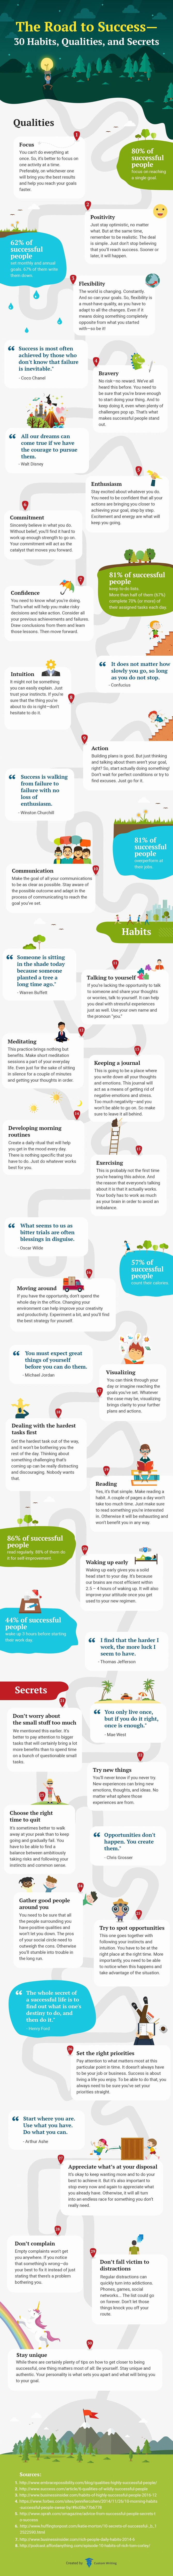 Infographic Of The Day: The Road To Success